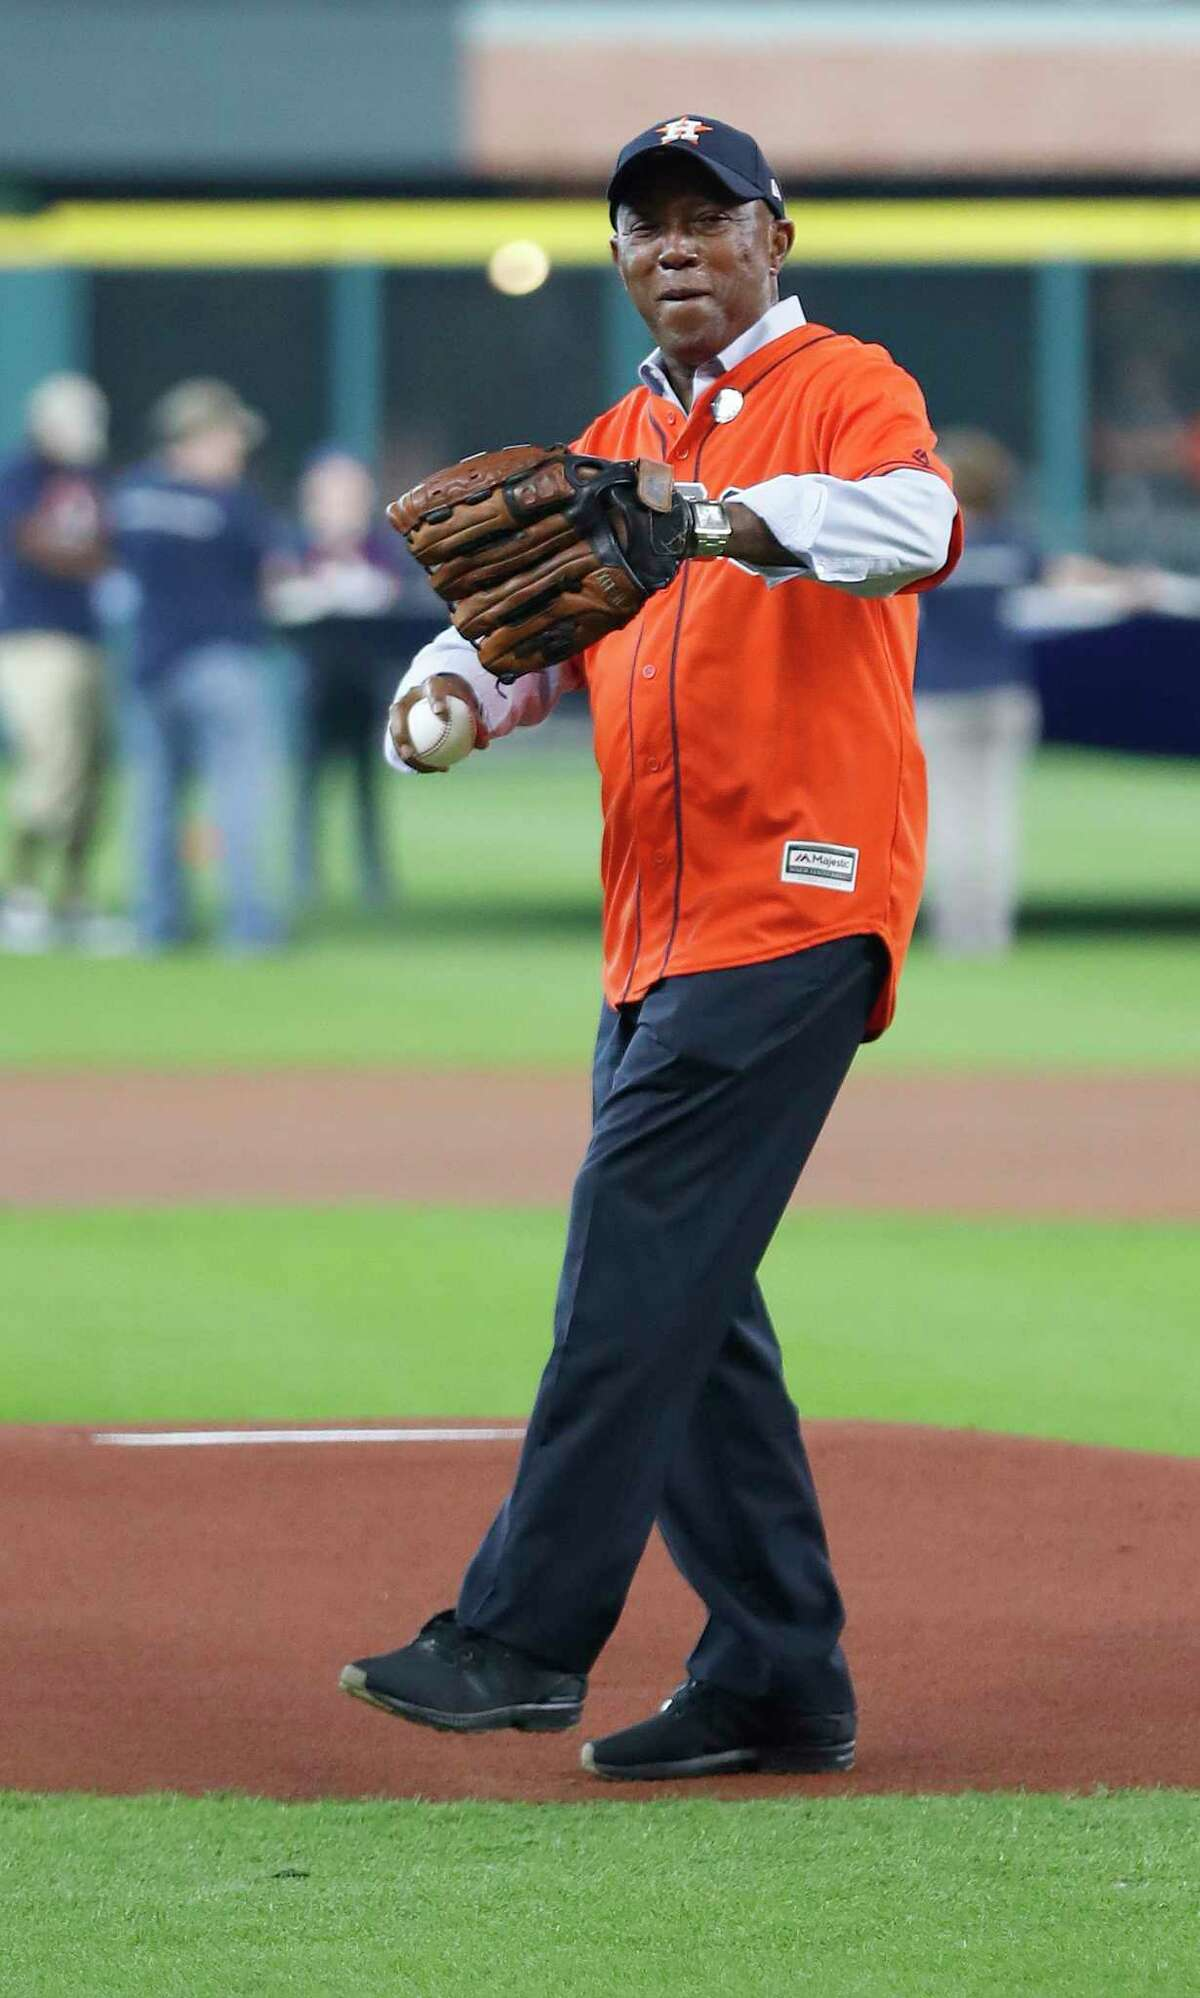 Houston Mayor Sylvester Turner throws out the first pitch before the start of an MLB baseball game at Minute Maid Park, Saturday, Sept. 2, 2017, in Houston. This is the first professional sporting event in the city since Tropical Storm Harvey.